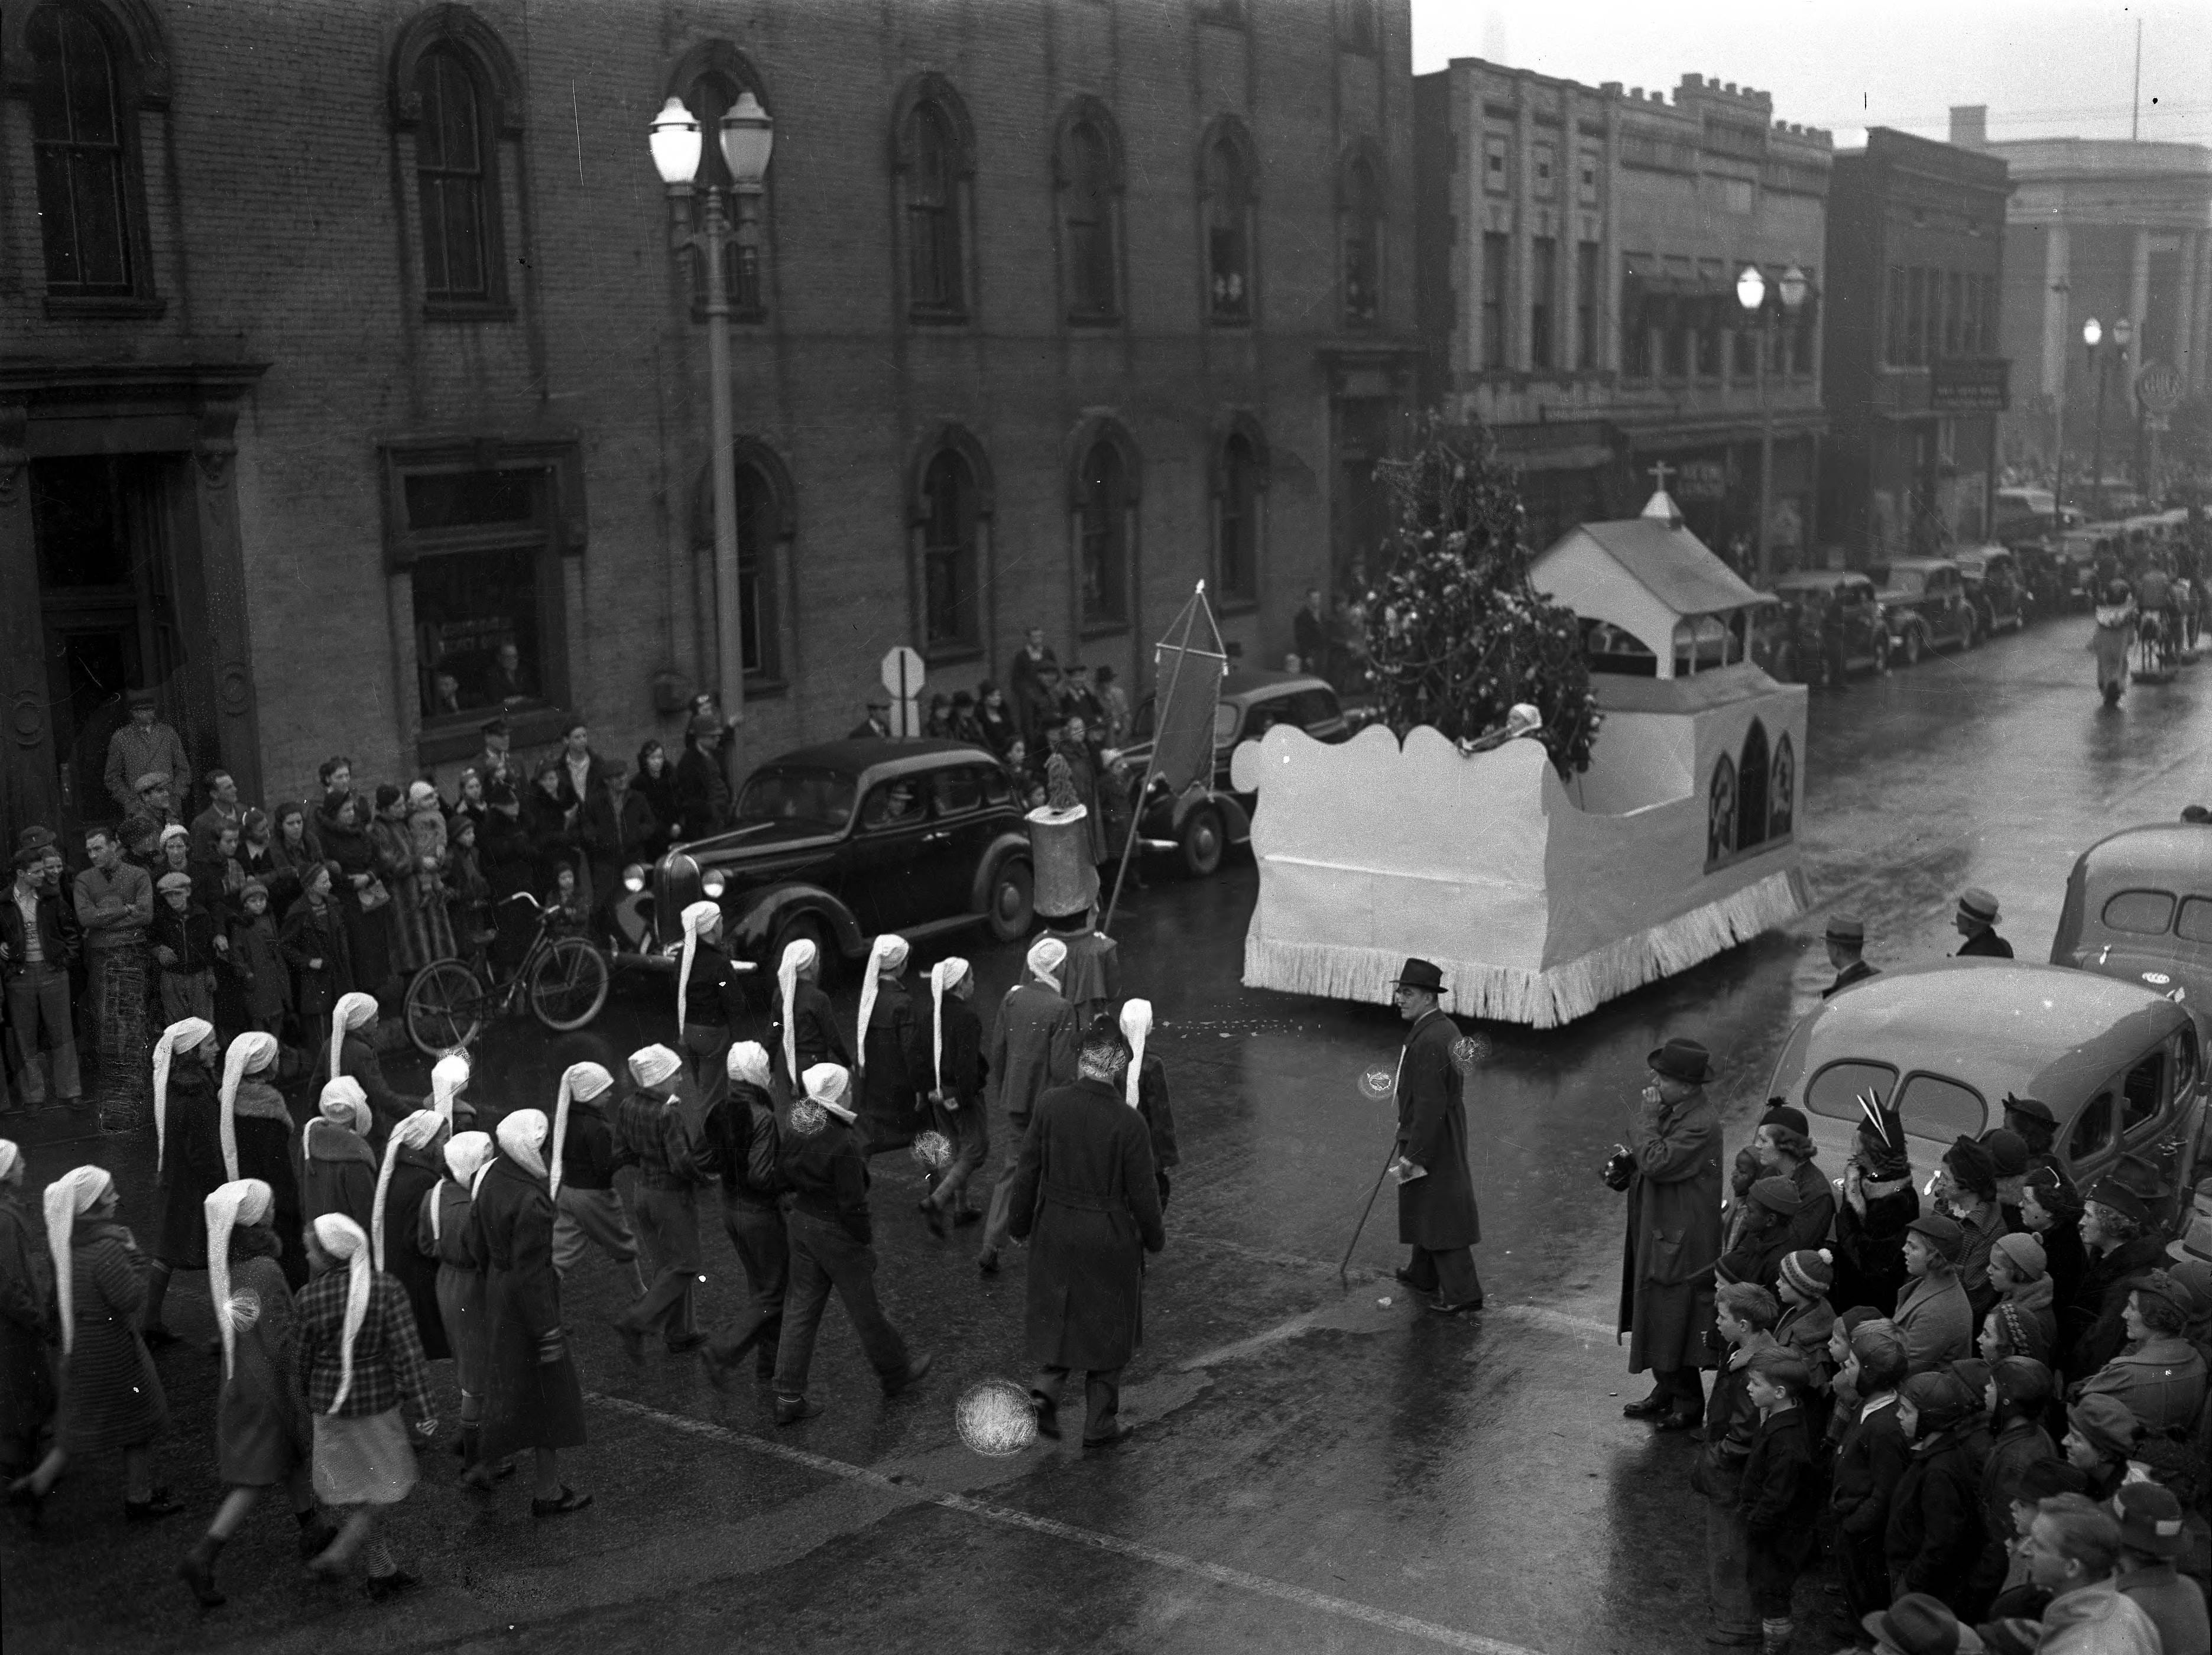 WPA Christmas Parade float--people wearing long stocking type caps following a church float, said to be on Main St. Crowds and cars nearby.